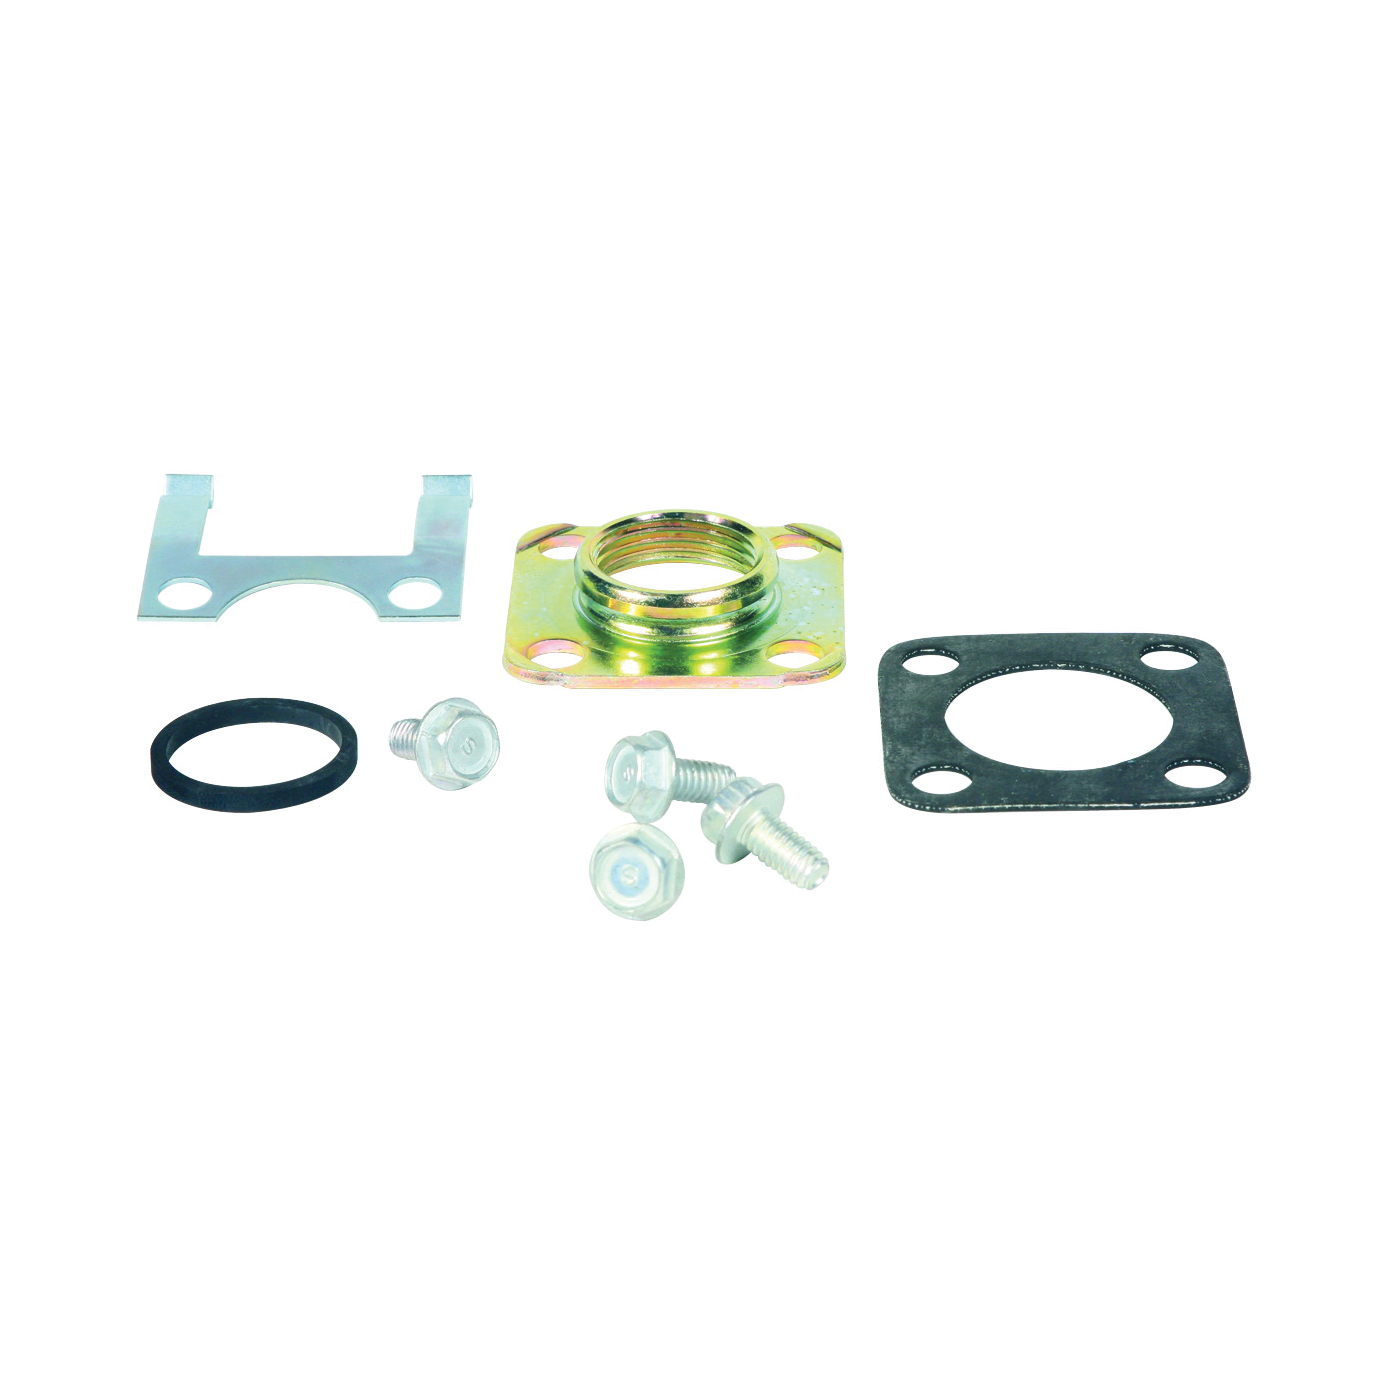 Picture of CAMCO 07223 Bilingual Adapter Kit